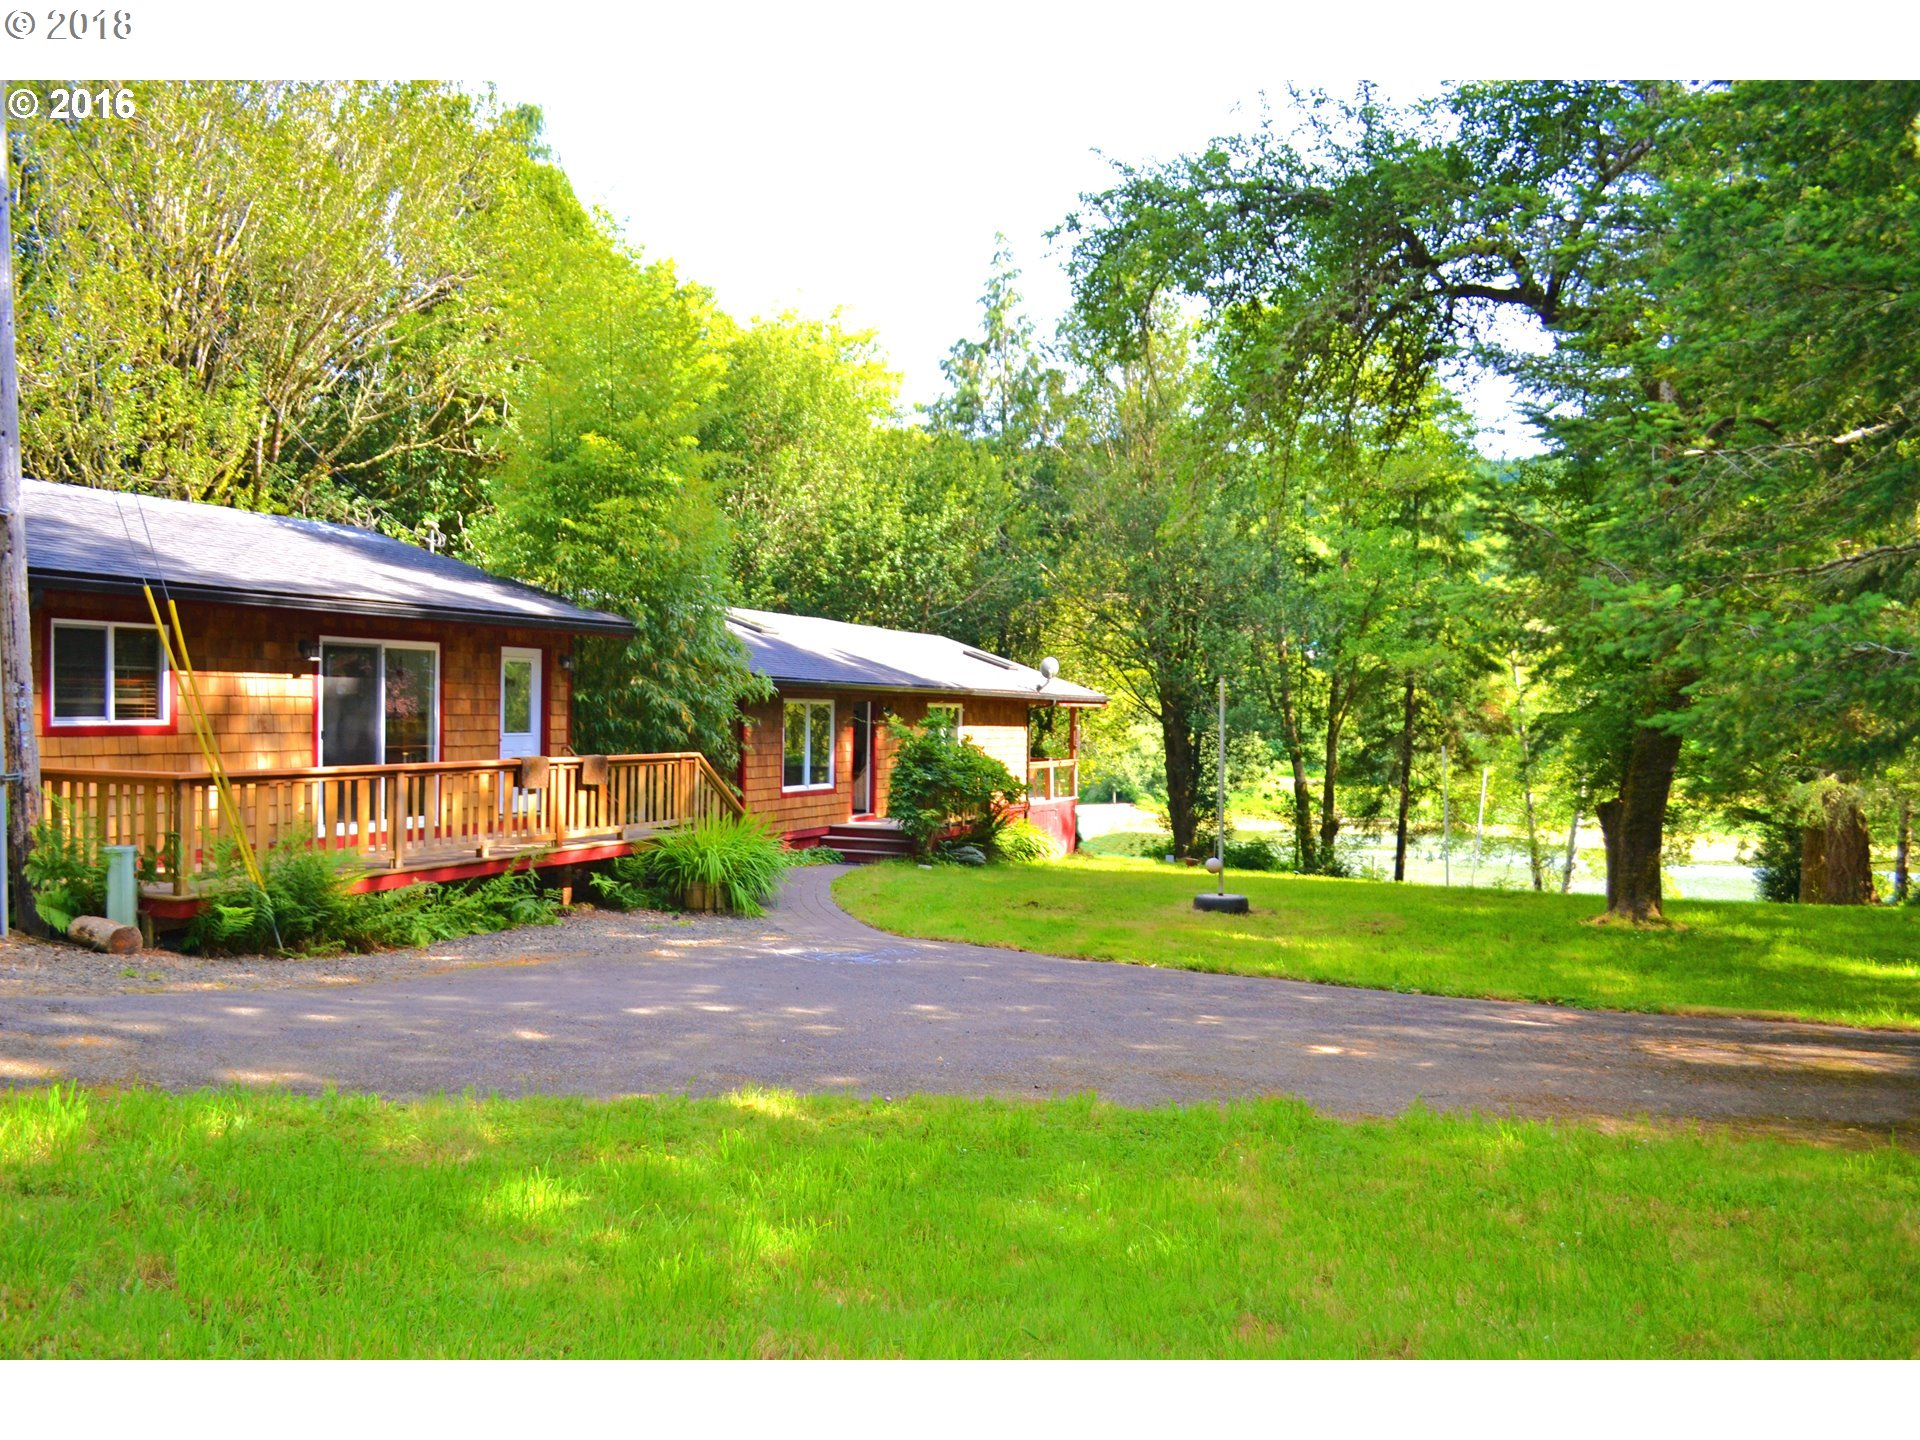 1768 sq. ft 5 bedrooms 2 bathrooms  House For Sale,Lakeside, OR